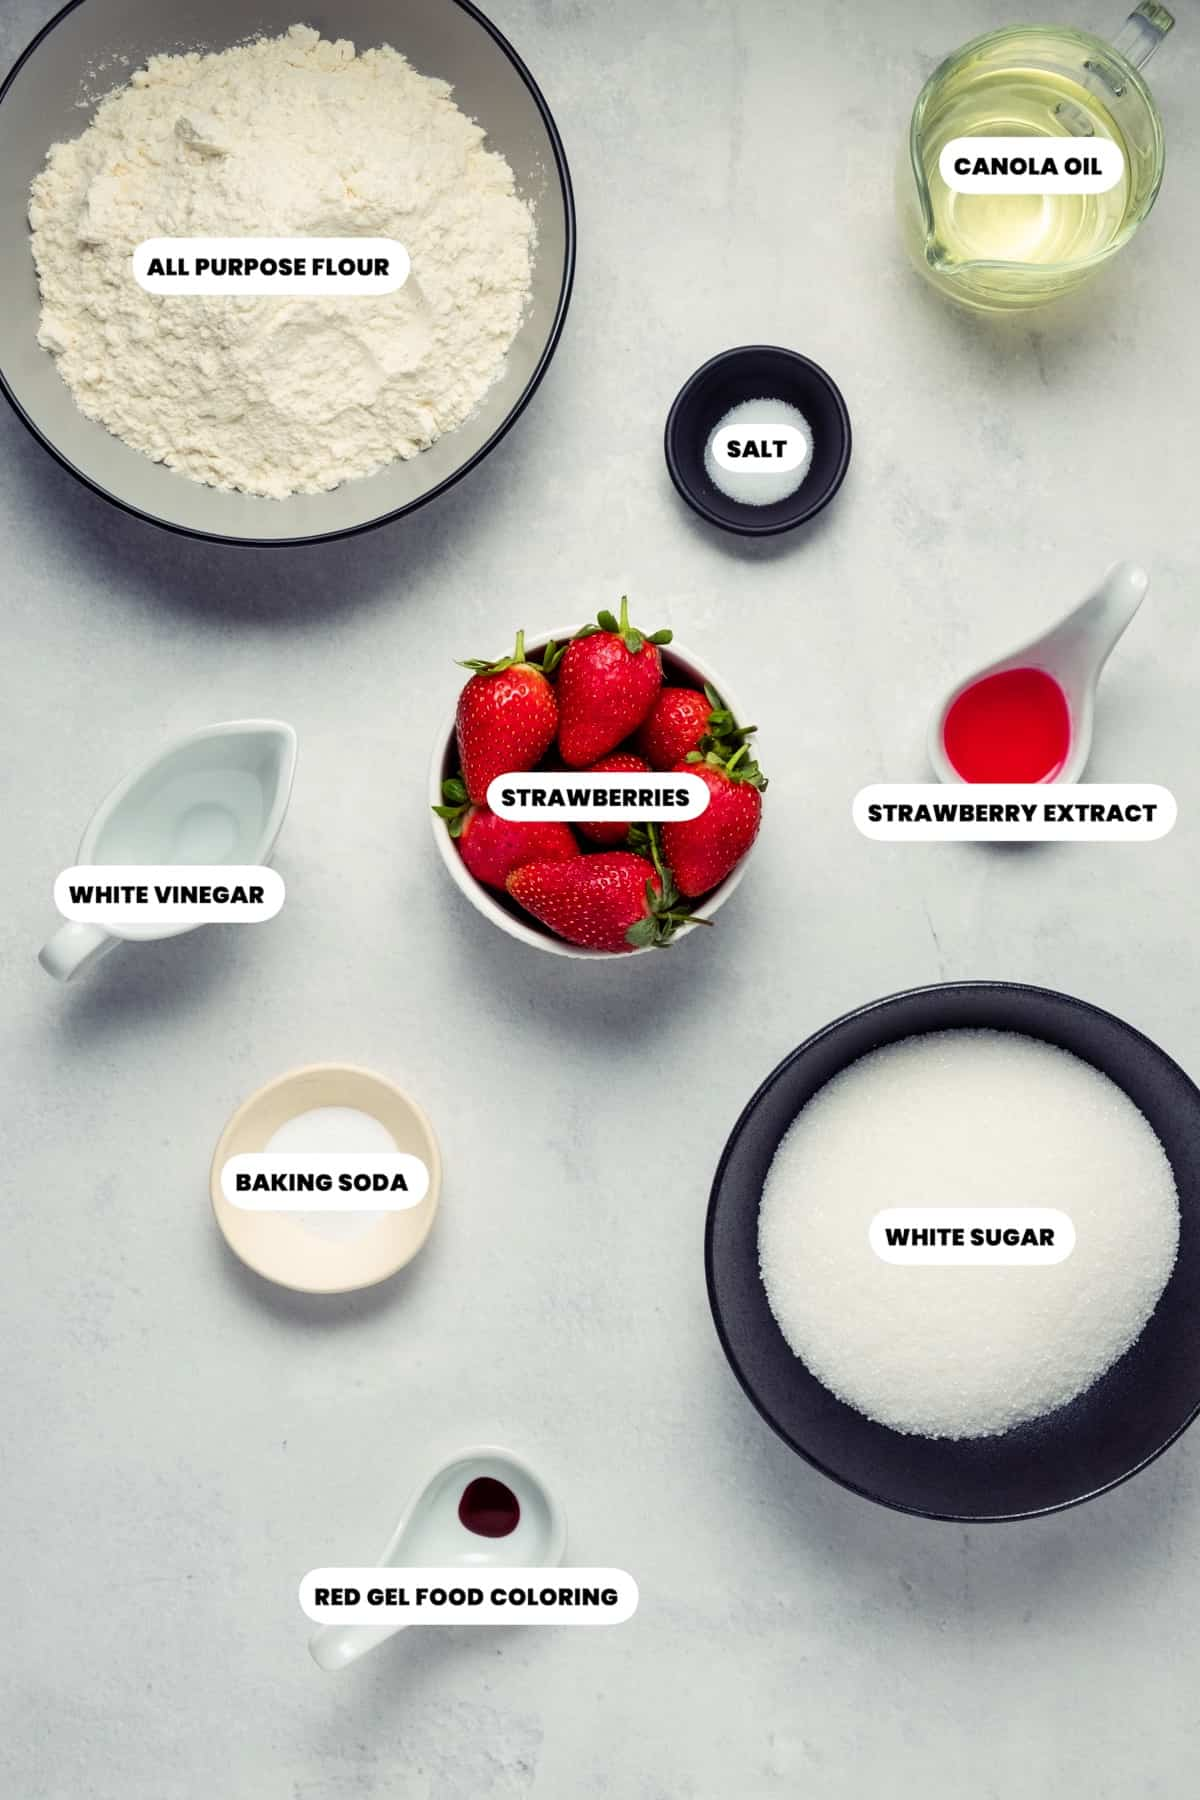 Photo of the ingredients needed to make vegan strawberry cake.